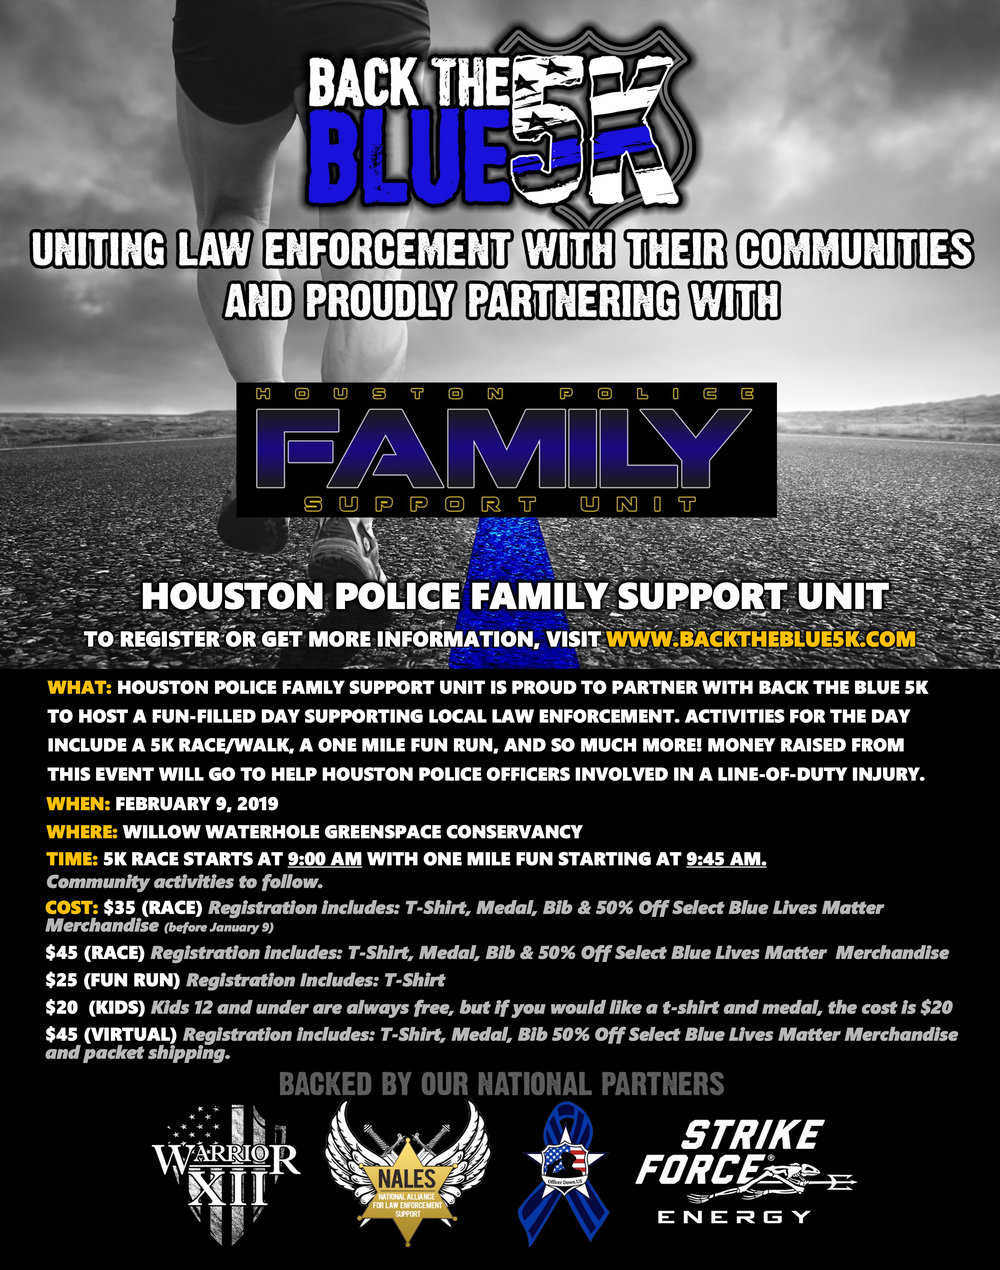 Blue 5k Event Flyer - Houston.jpg